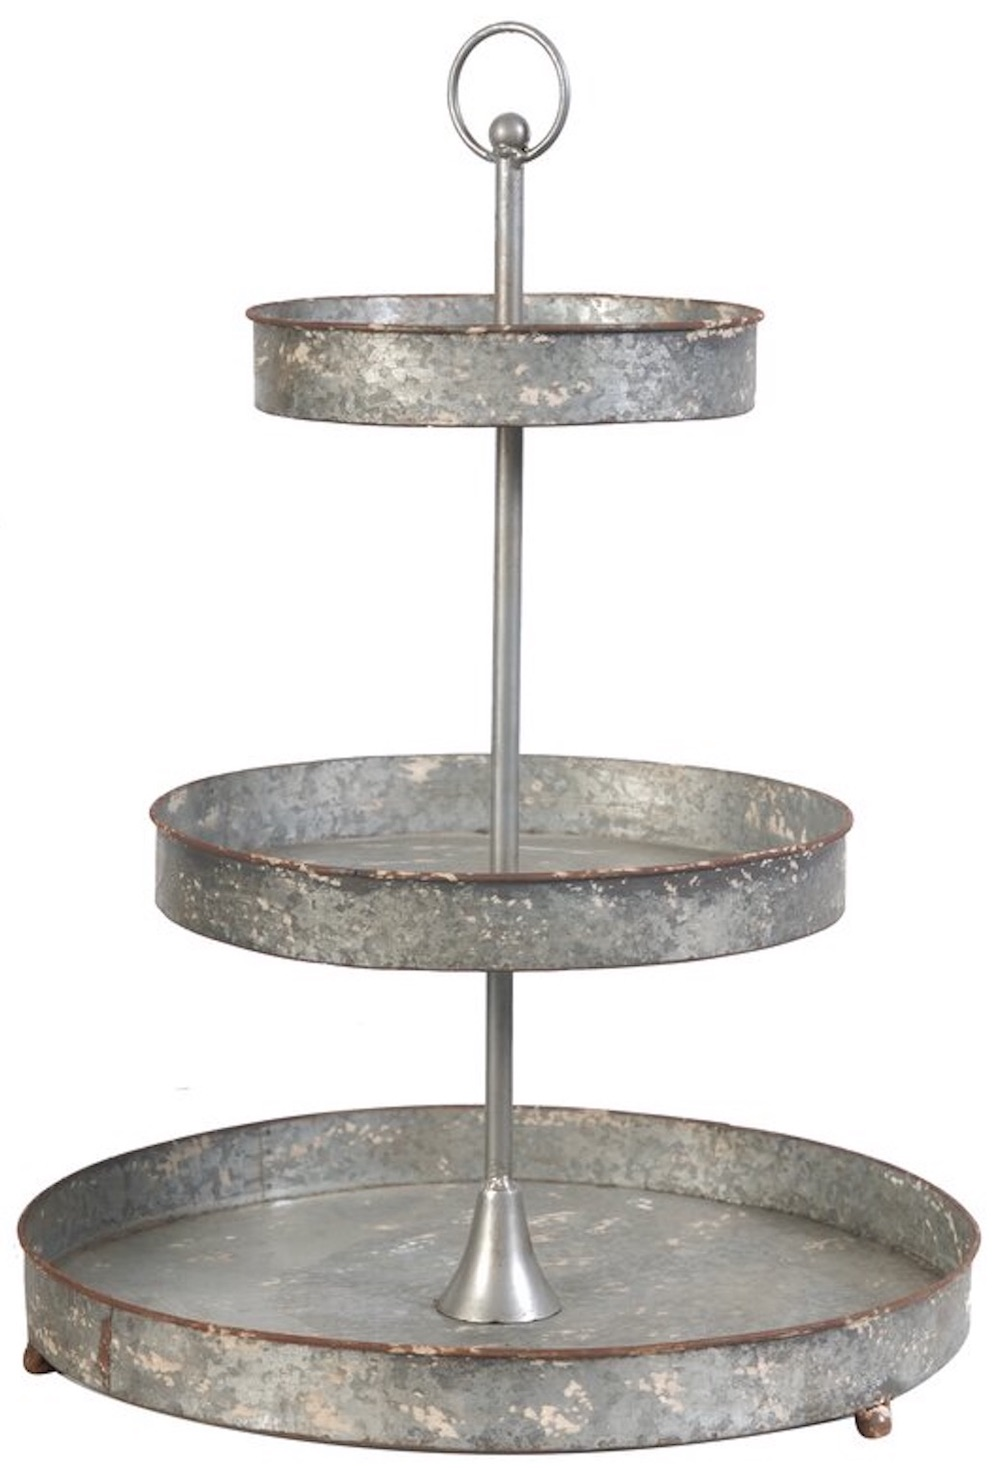 Farmhouse Tiered Stands Rosemont Tiered Stand #TierStands #TierTrayStandd #Decor #FarmhouseDecor #RusticDecor #VintageDecor #CountryStyleDecor